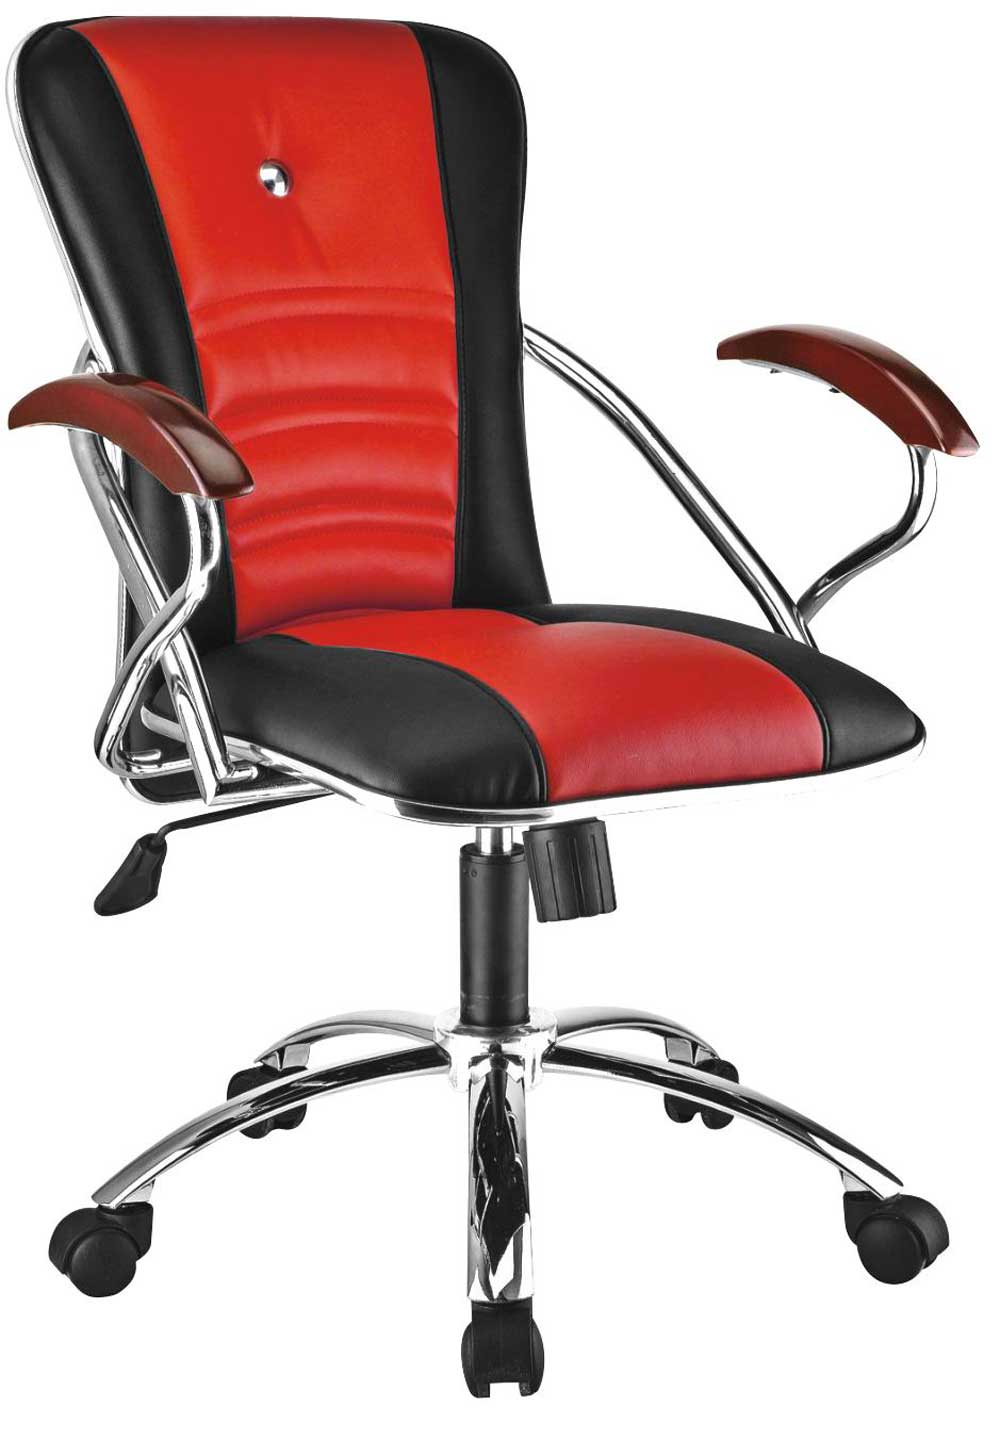 Red Desk Chairs | Office Furniture